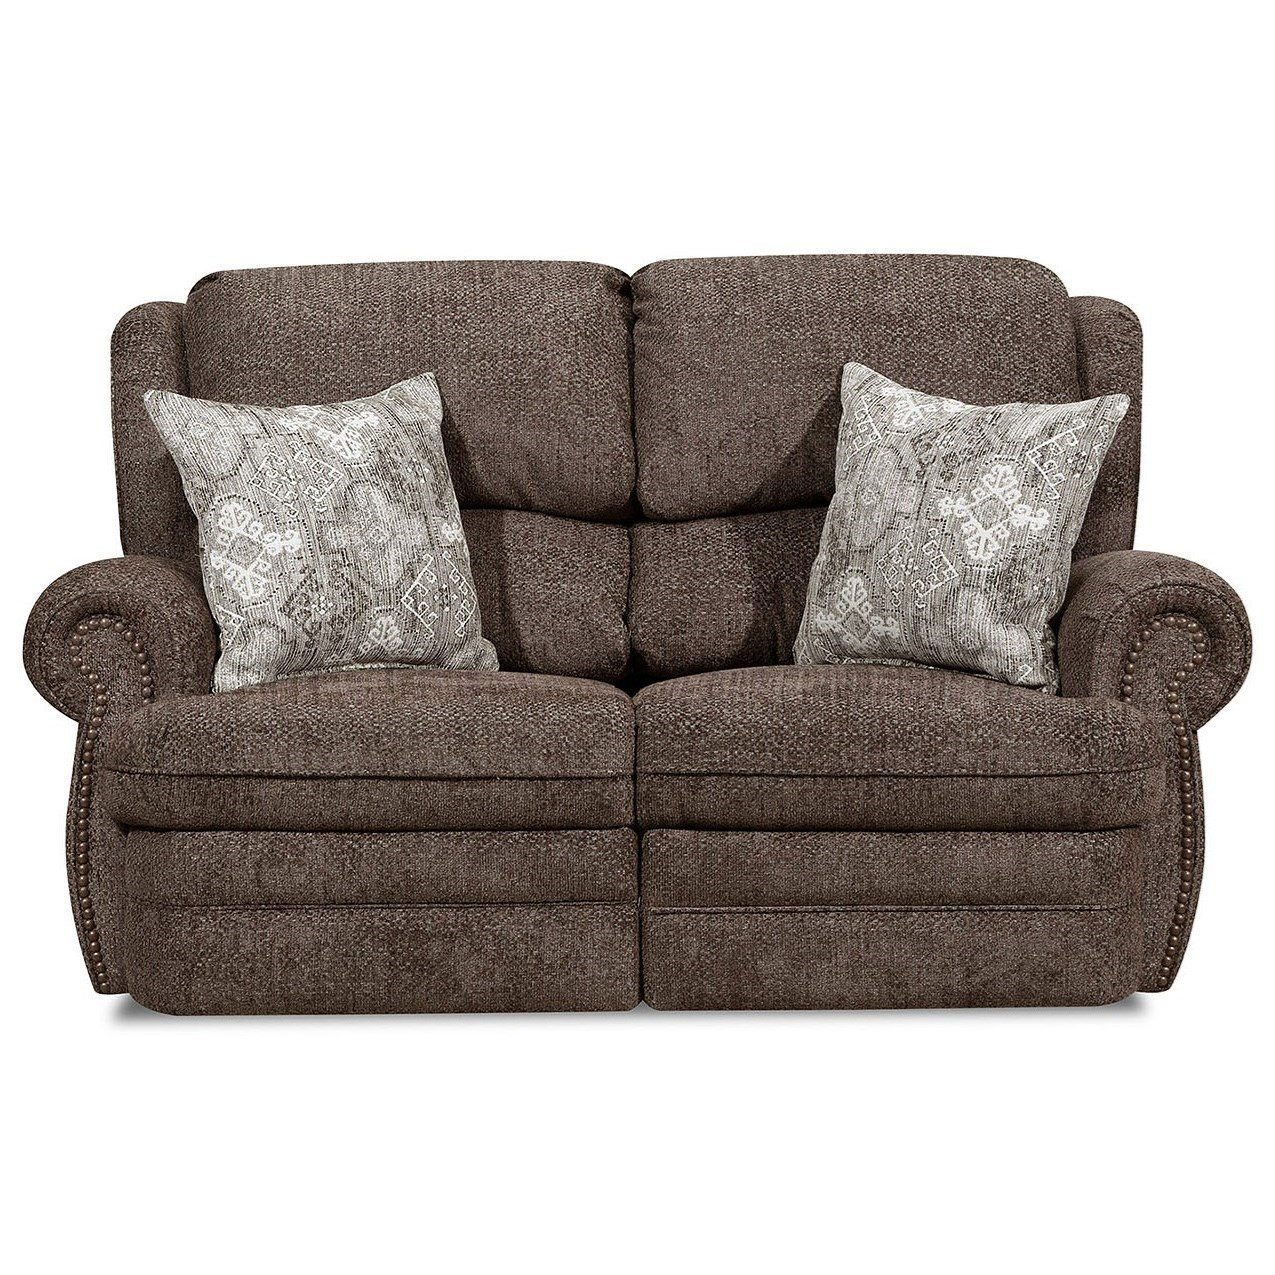 57000 Reclining Loveseat by United Furniture Industries at Bullard Furniture